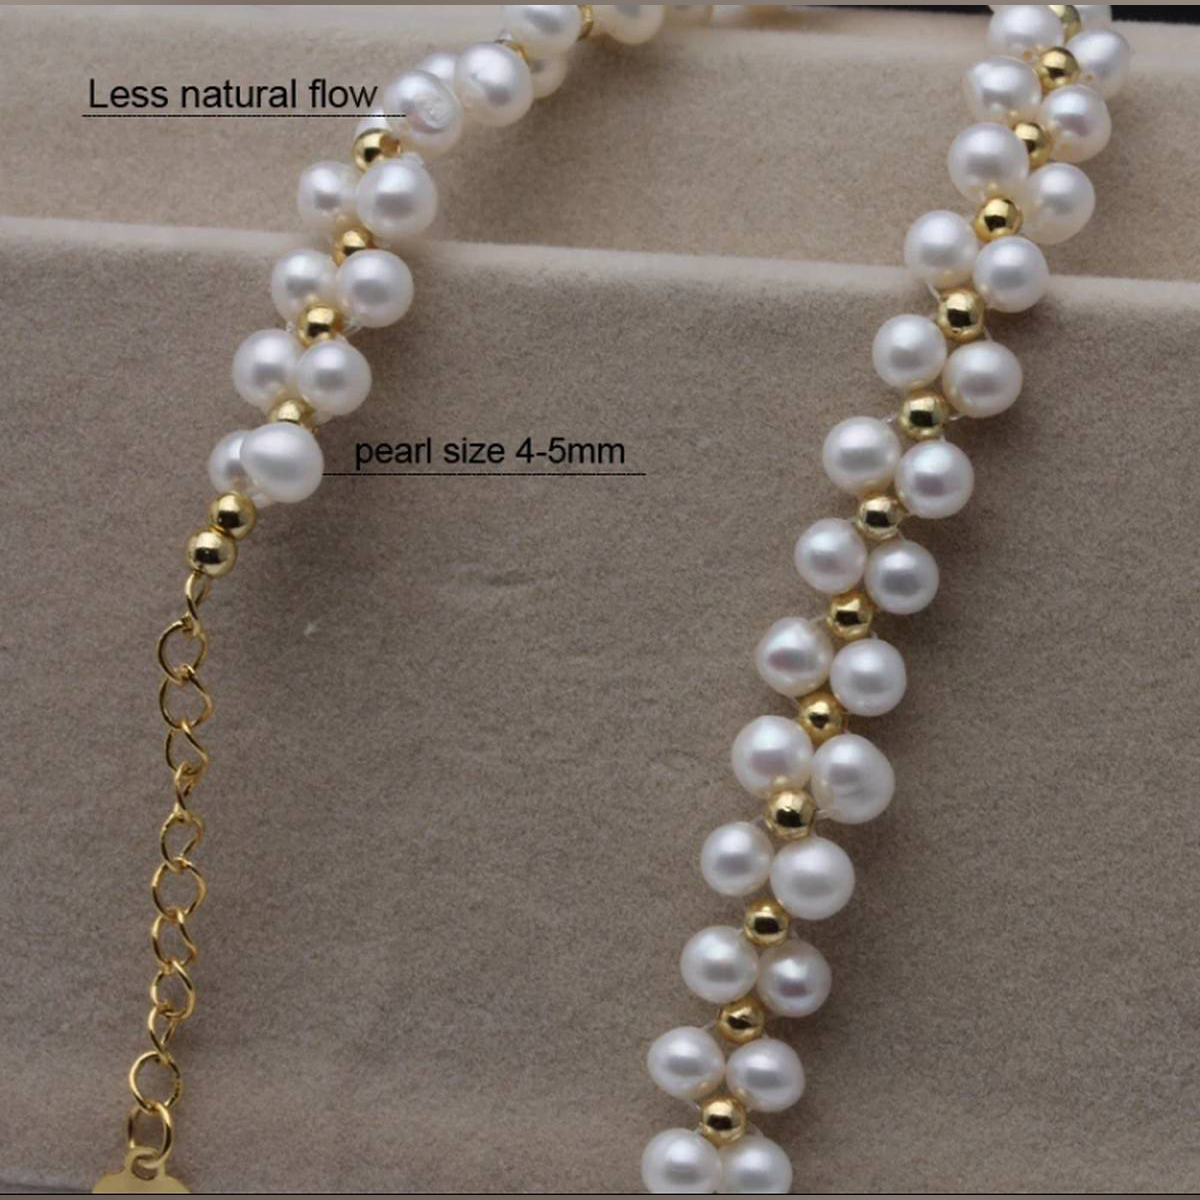 Trendy 2020 Necklace For Girls, Pearl Necklace Double Press